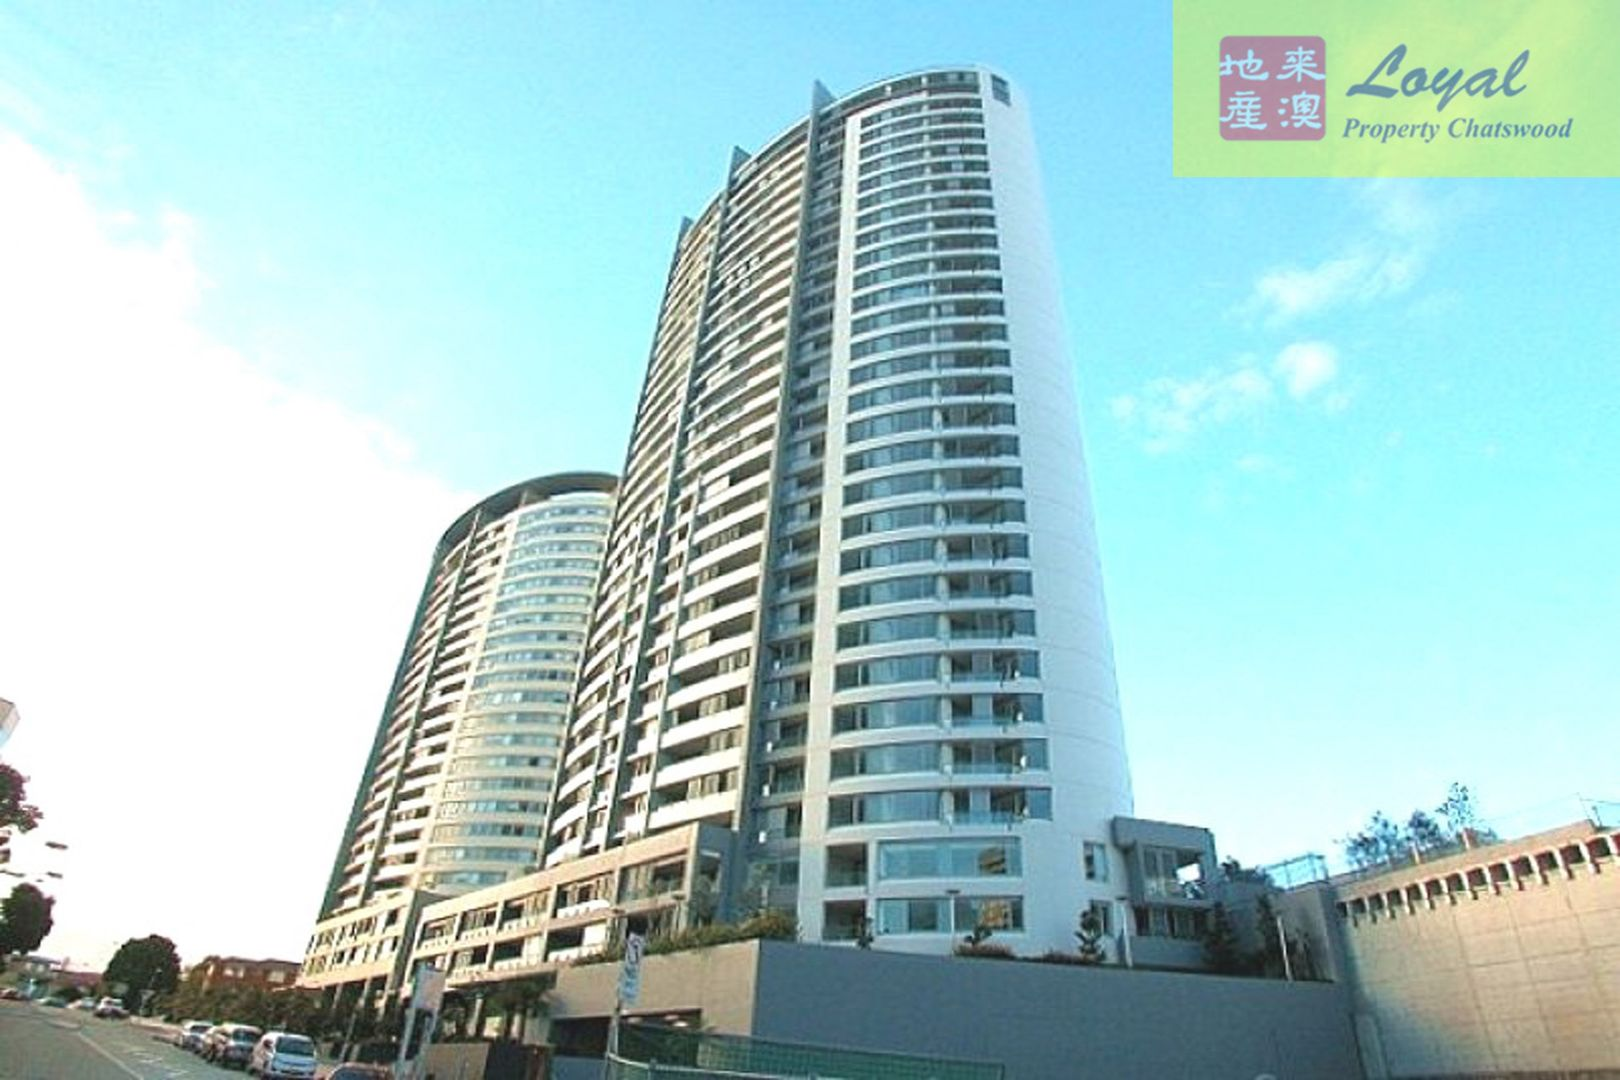 2901/9 Railway Street, Chatswood NSW 2067, Image 0